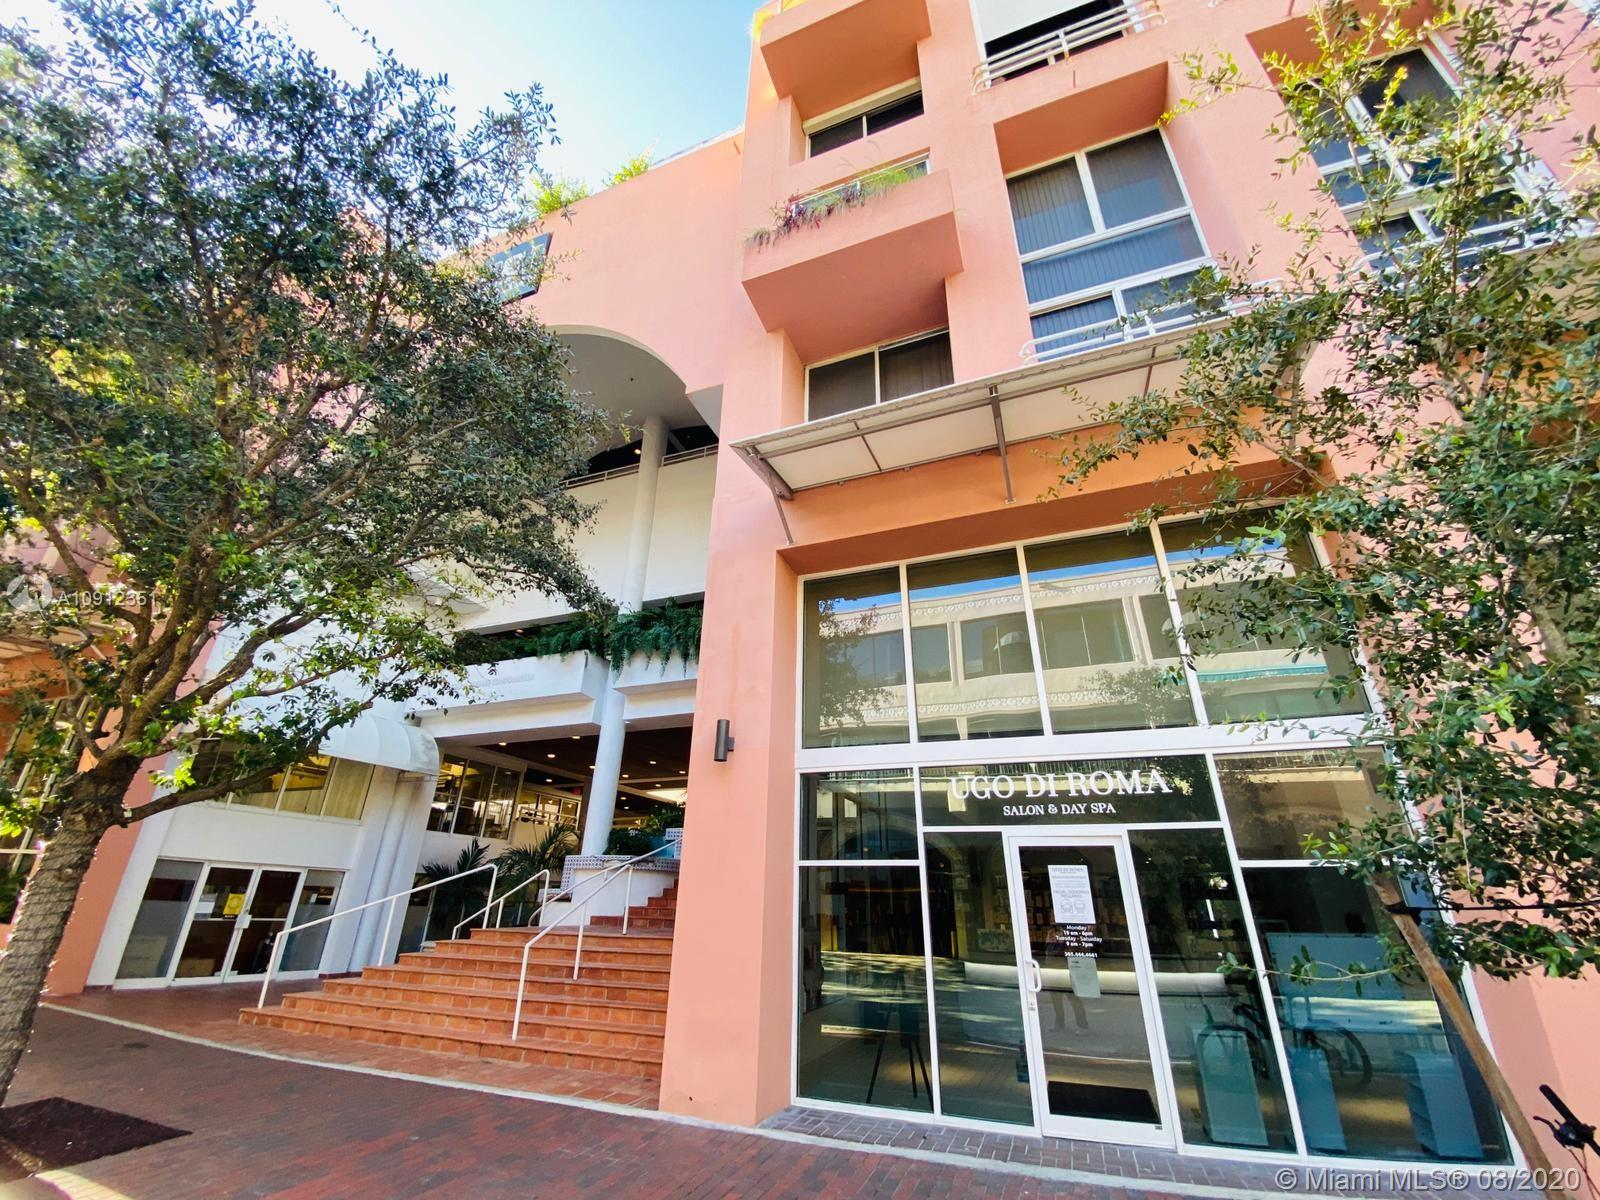 UPDATED STUDIO LOFT PORCELAIN FLOORS, TRAVERTINE BATHROOM AND WOOD KITCHEN WITH GRANITE COUNTERTOPS LIVE IN THE HEART OF COCONUT GROVE ACROSS THE STREET FROM THE MAYFAIR, COCOWALK AND THE FINEST RESTAURANTS, BARS, SHOPS AND ENTERTAINMENT IN ALL OF MIAMI WALK 2 BLOCKS TO OCEAN OR TO DINNER KEY MARINA, THIS IS MIAMI LIVING AT ITS BEST.